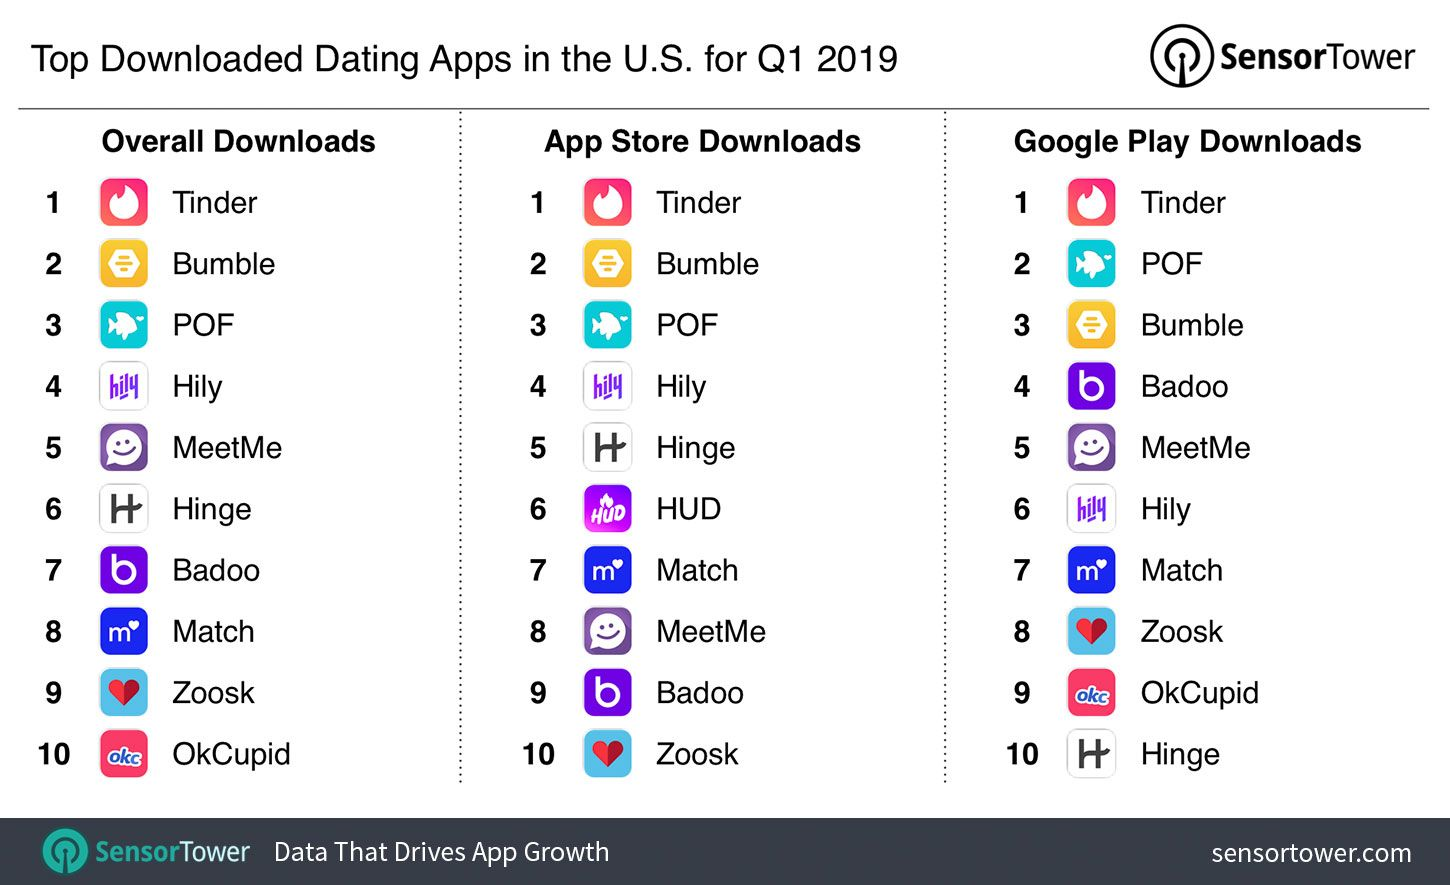 Top Dating Apps in the U.S. for Q1 2019 by Downloads Top